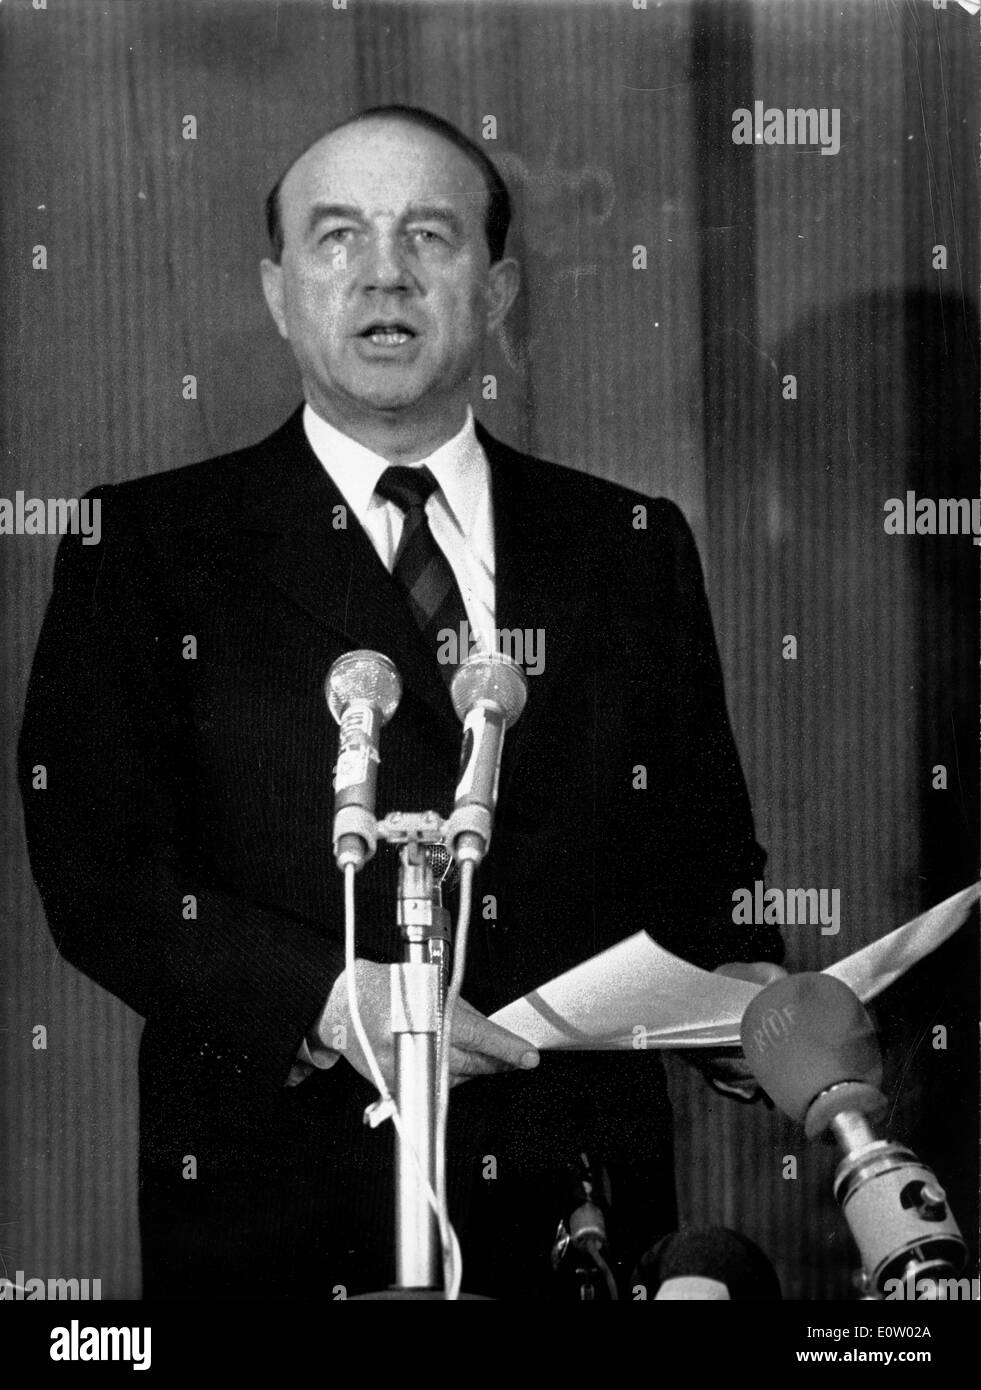 Raymond Marcellin during a press conference - Stock Image